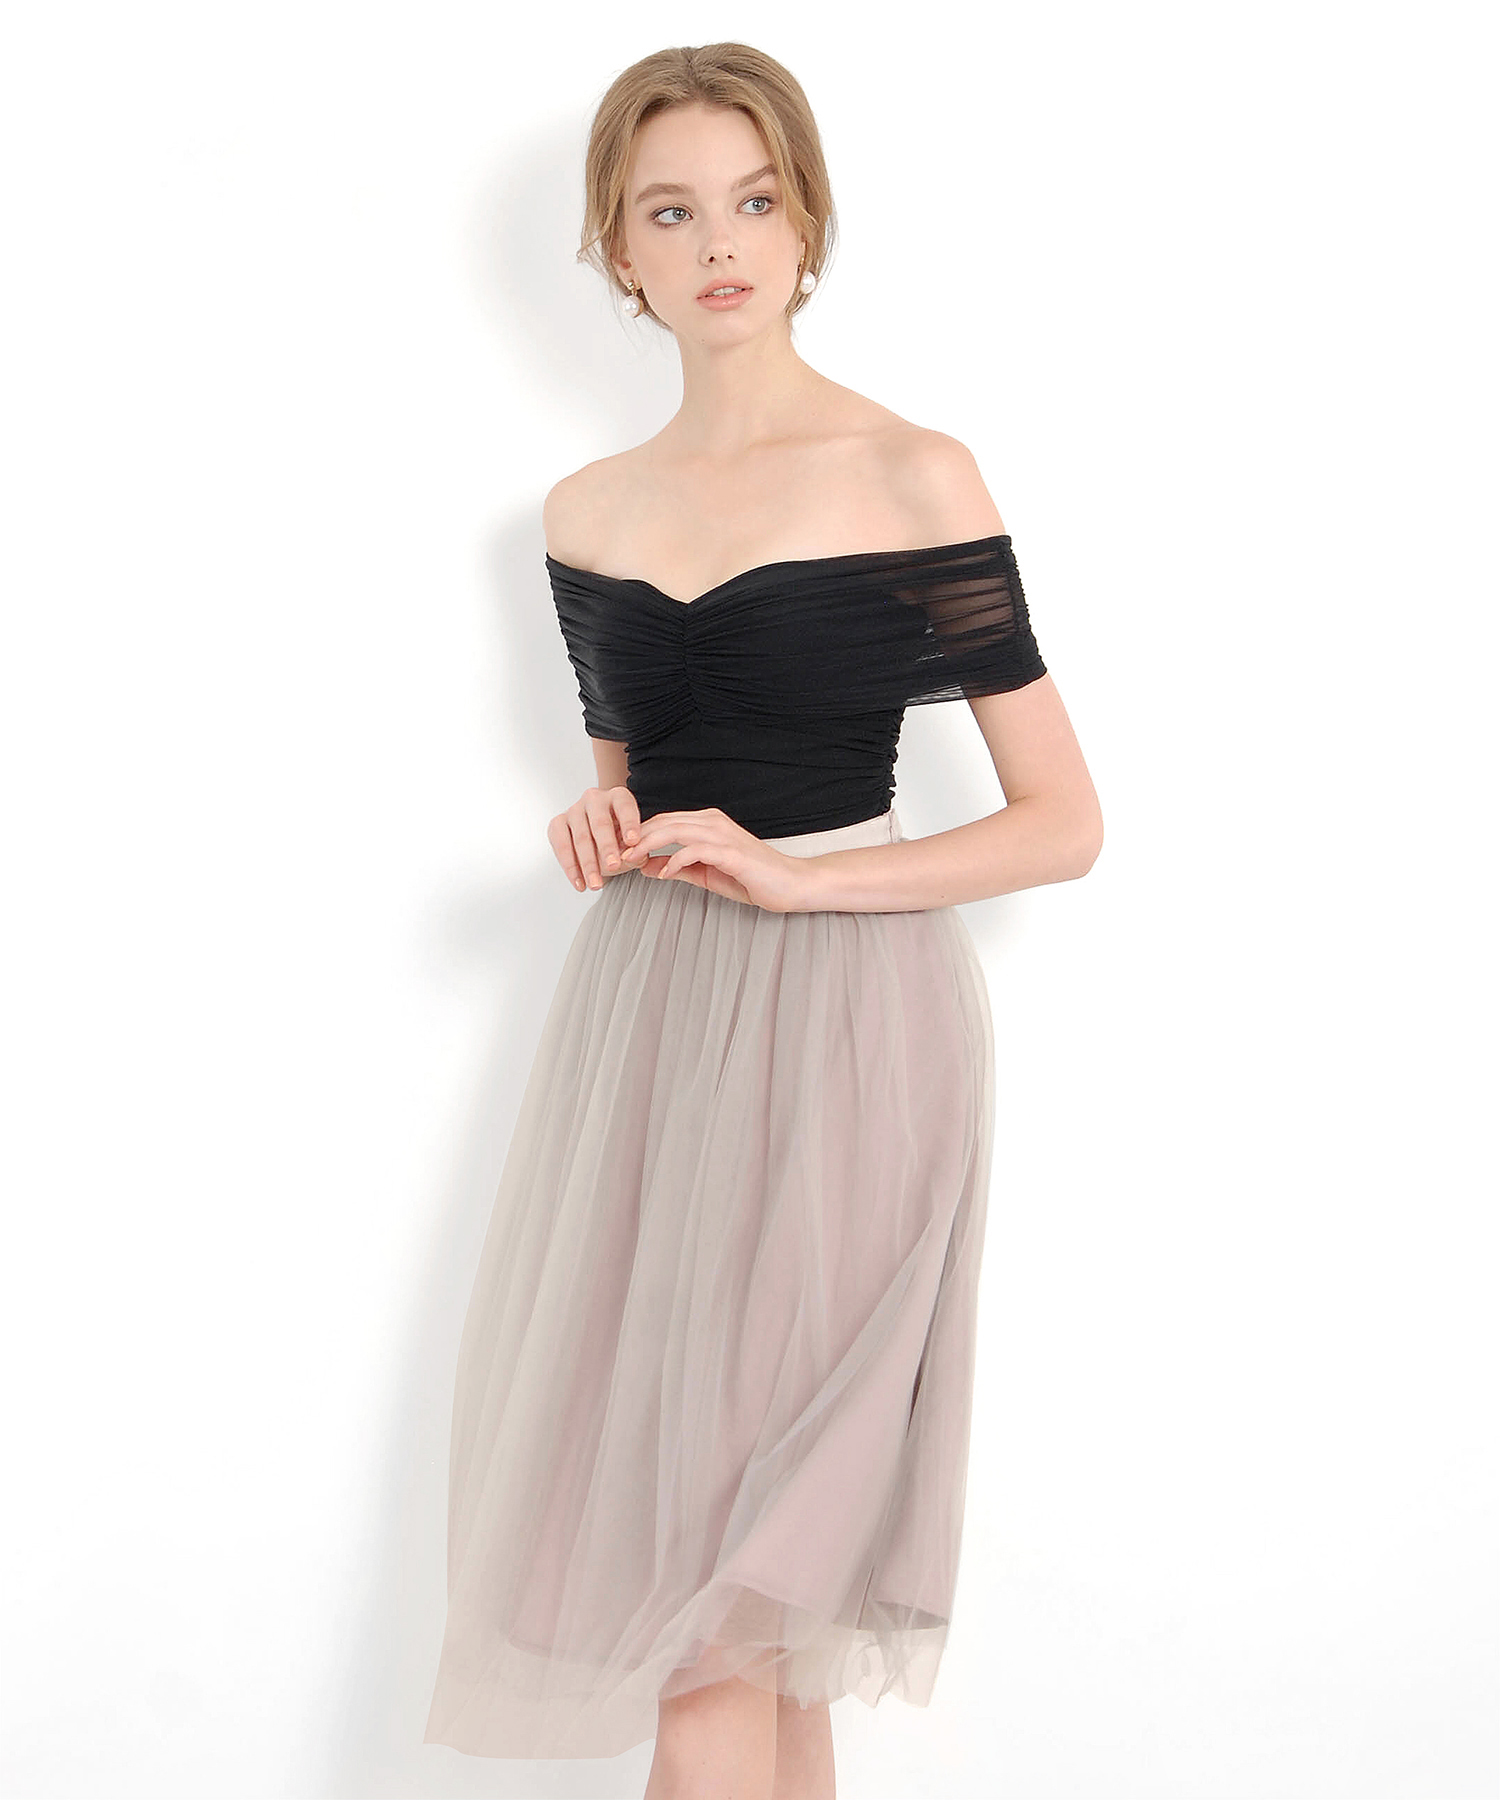 Tulle Midi Skirt | Layered Tulle Midi Skirt | Tulle Skirt Dress